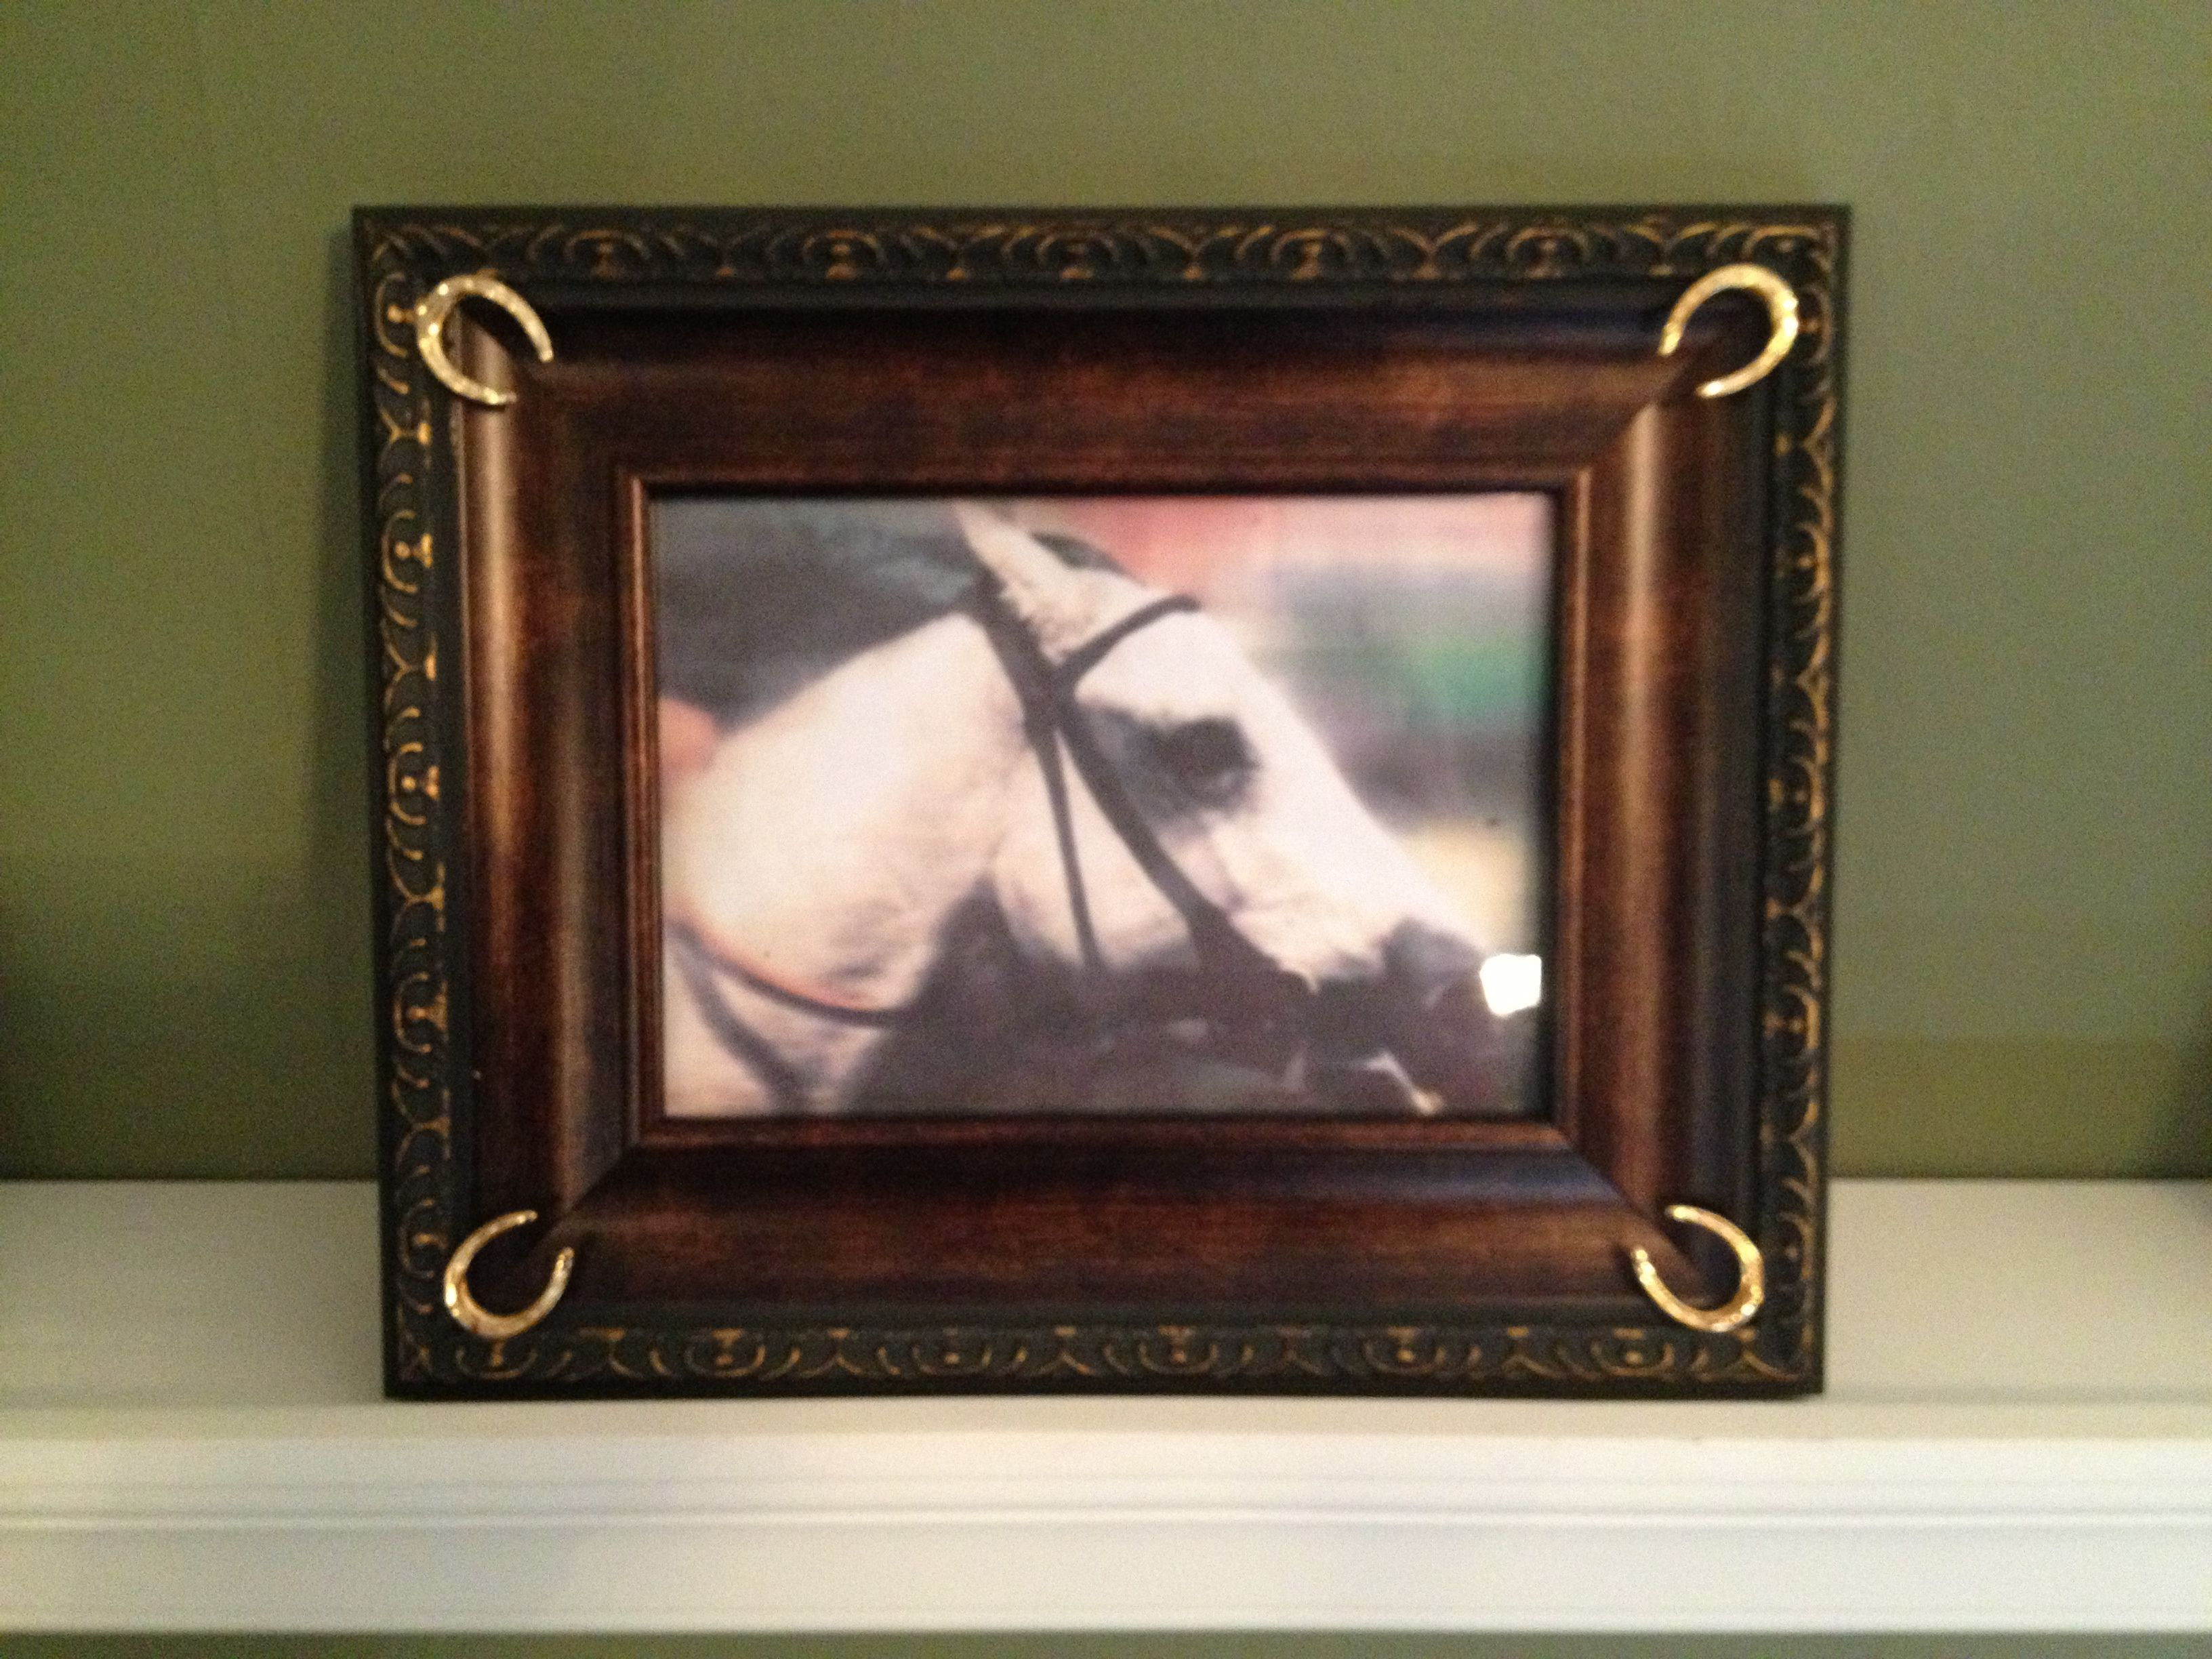 5x7 lawrence frame 3200 unique equestrian gifts pinterest 5x7 lawrence frame 3200 jeuxipadfo Gallery